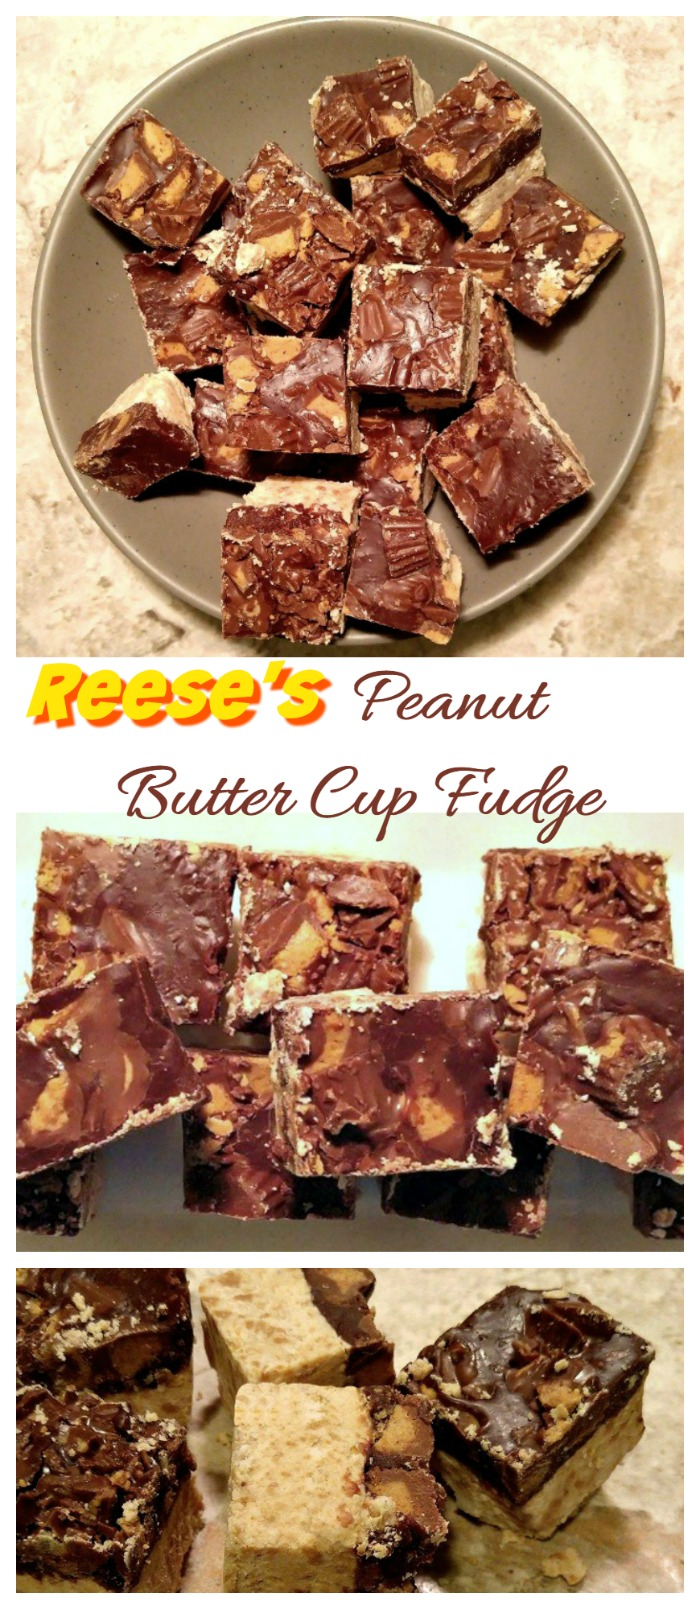 This Reese's peanut butter cup fudge has a crumbly bottom layer, a rich chocolate middle and chunks of Reese's peanut butter cups on the top. It is TO DIE FOR!